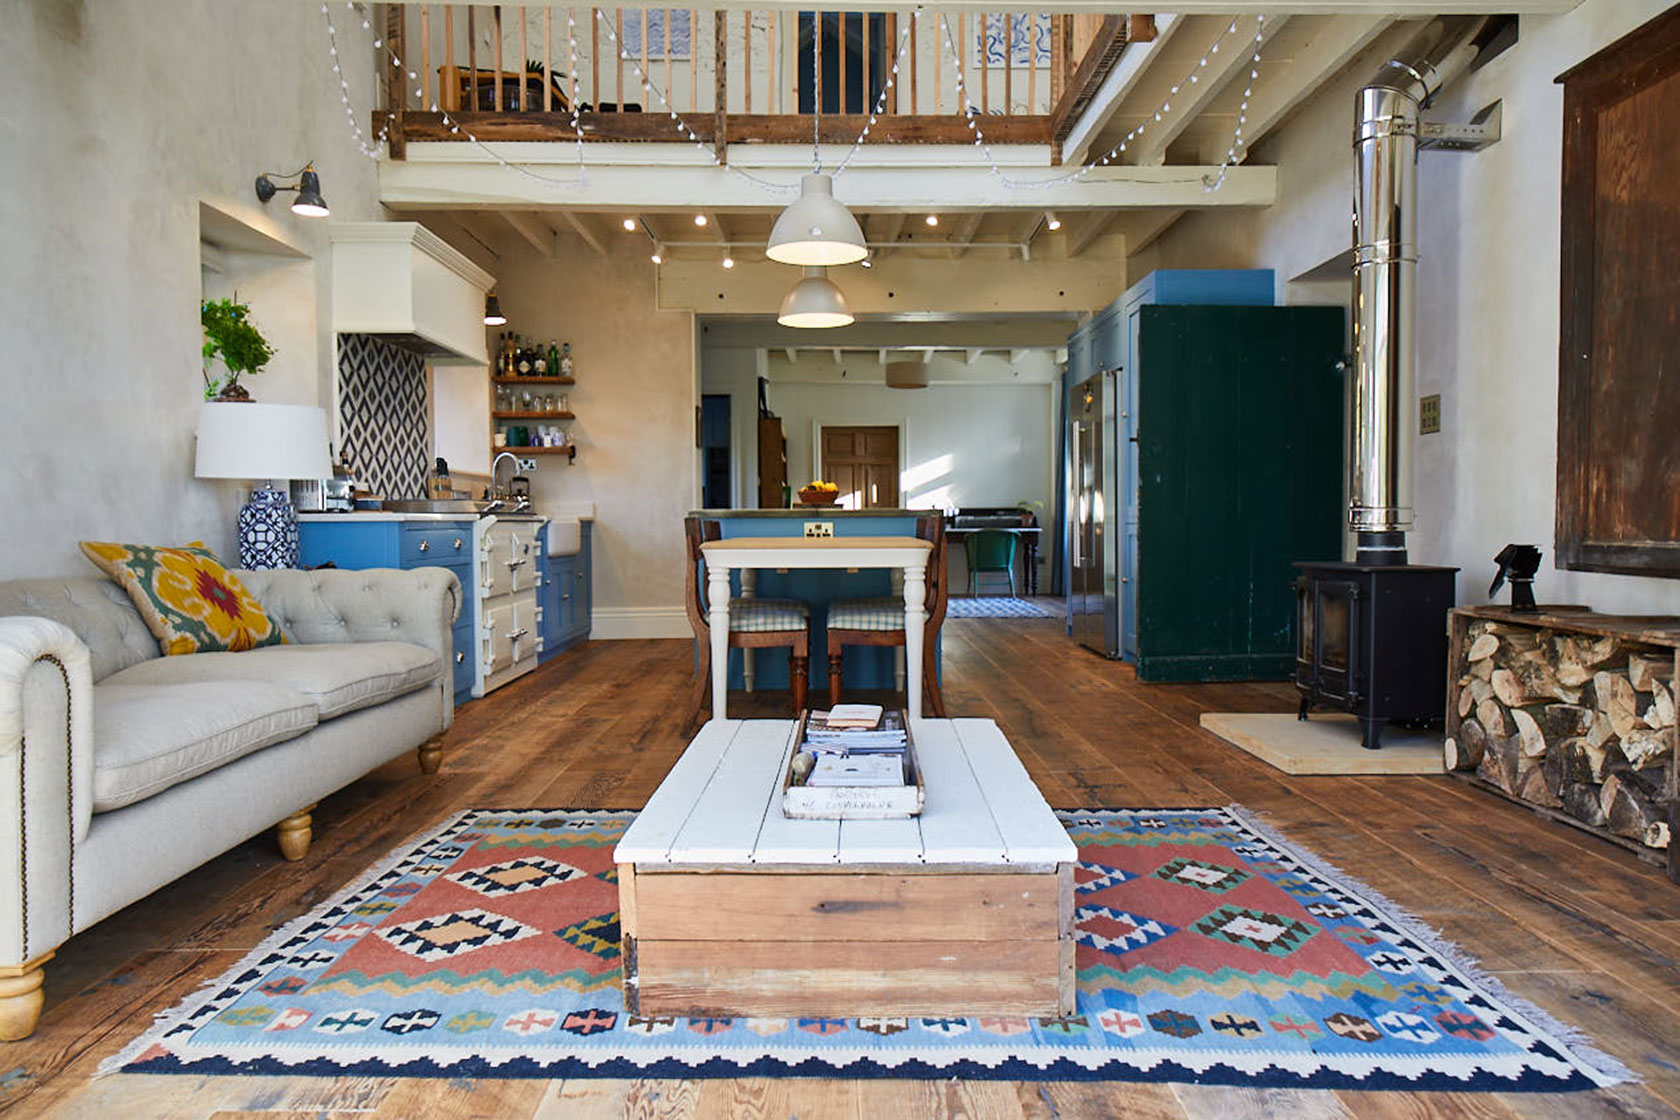 Reclaimed coffee table sits on large aztec rug with cream upholstered sofa